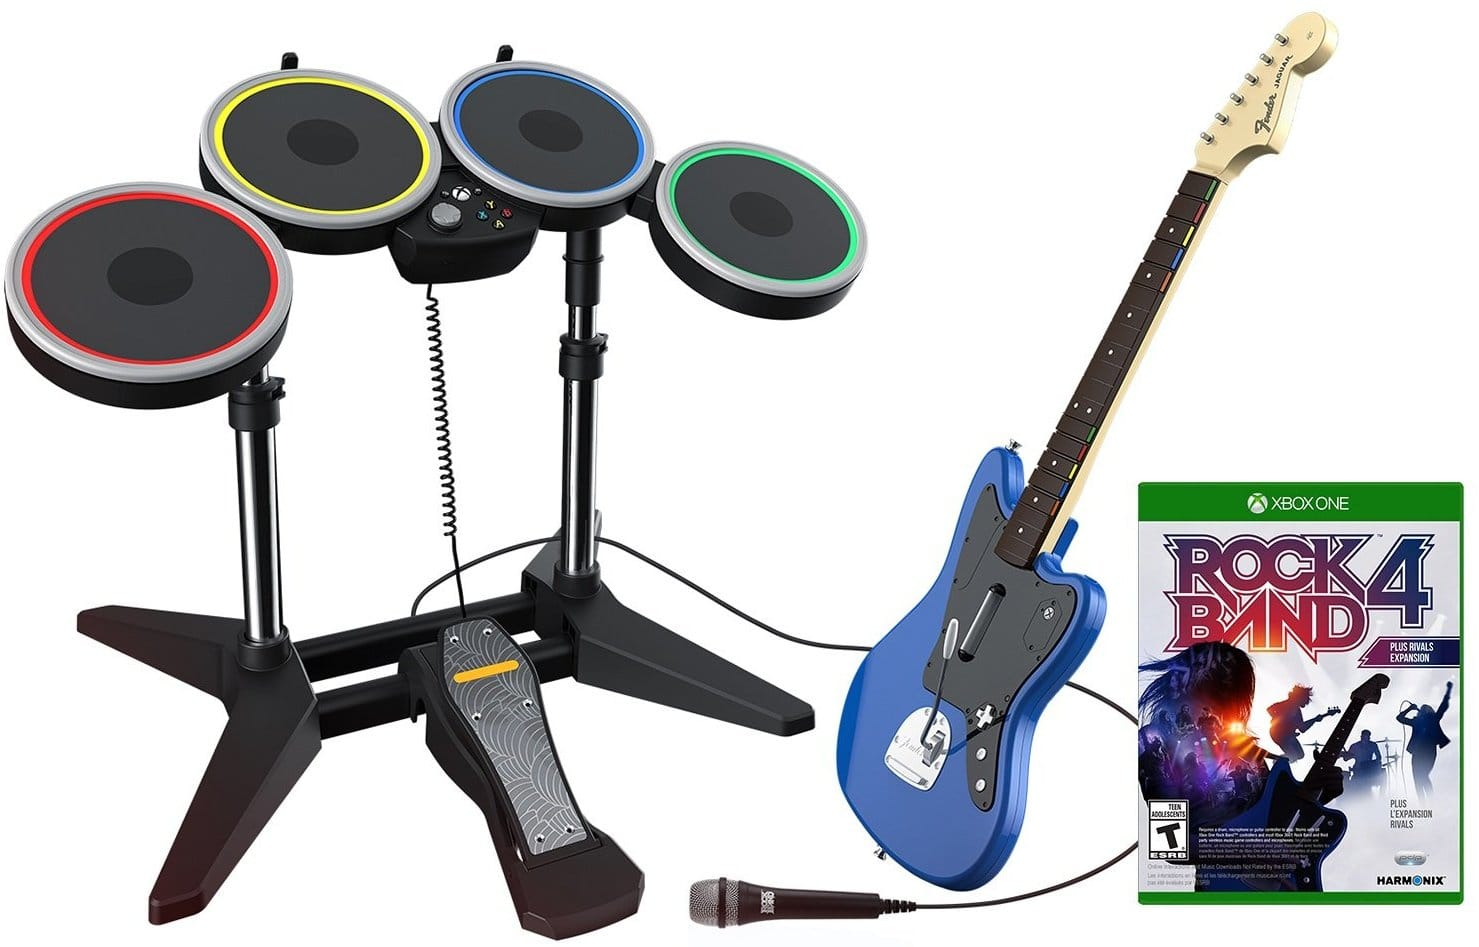 Rock Band Rivals Band Kit for Xbox One/PS4 $99 Amazon Prime